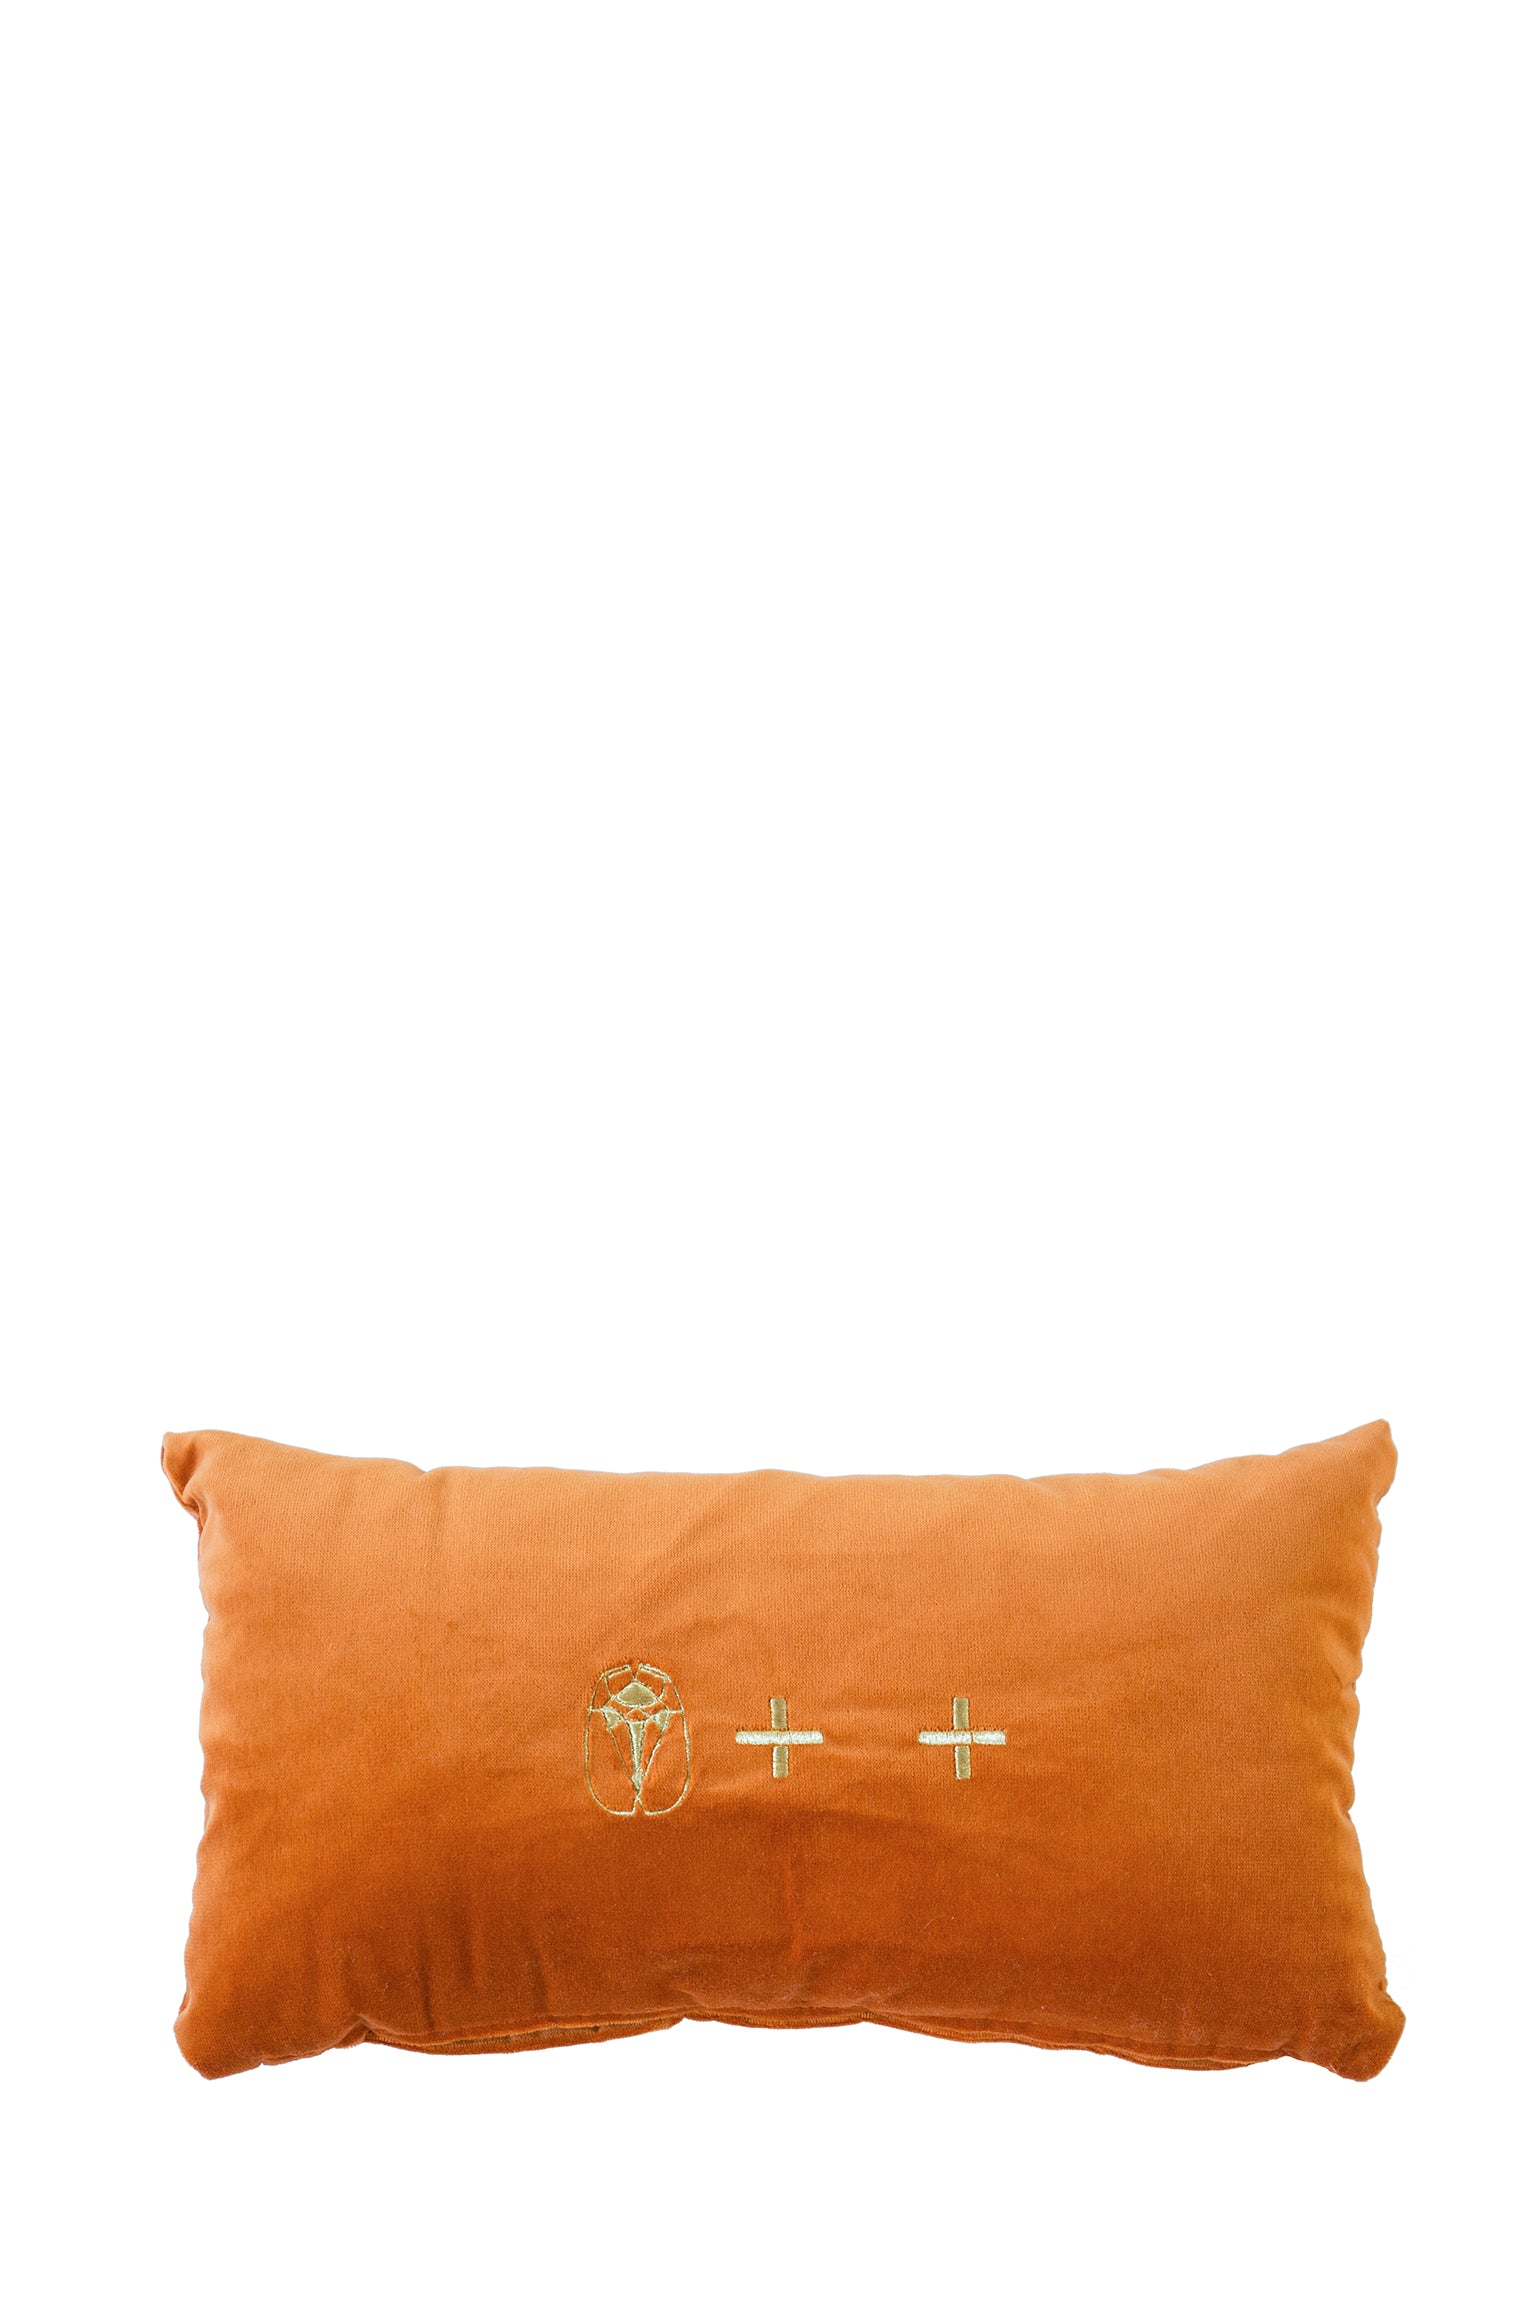 Velvet Cushion - Ochre Small